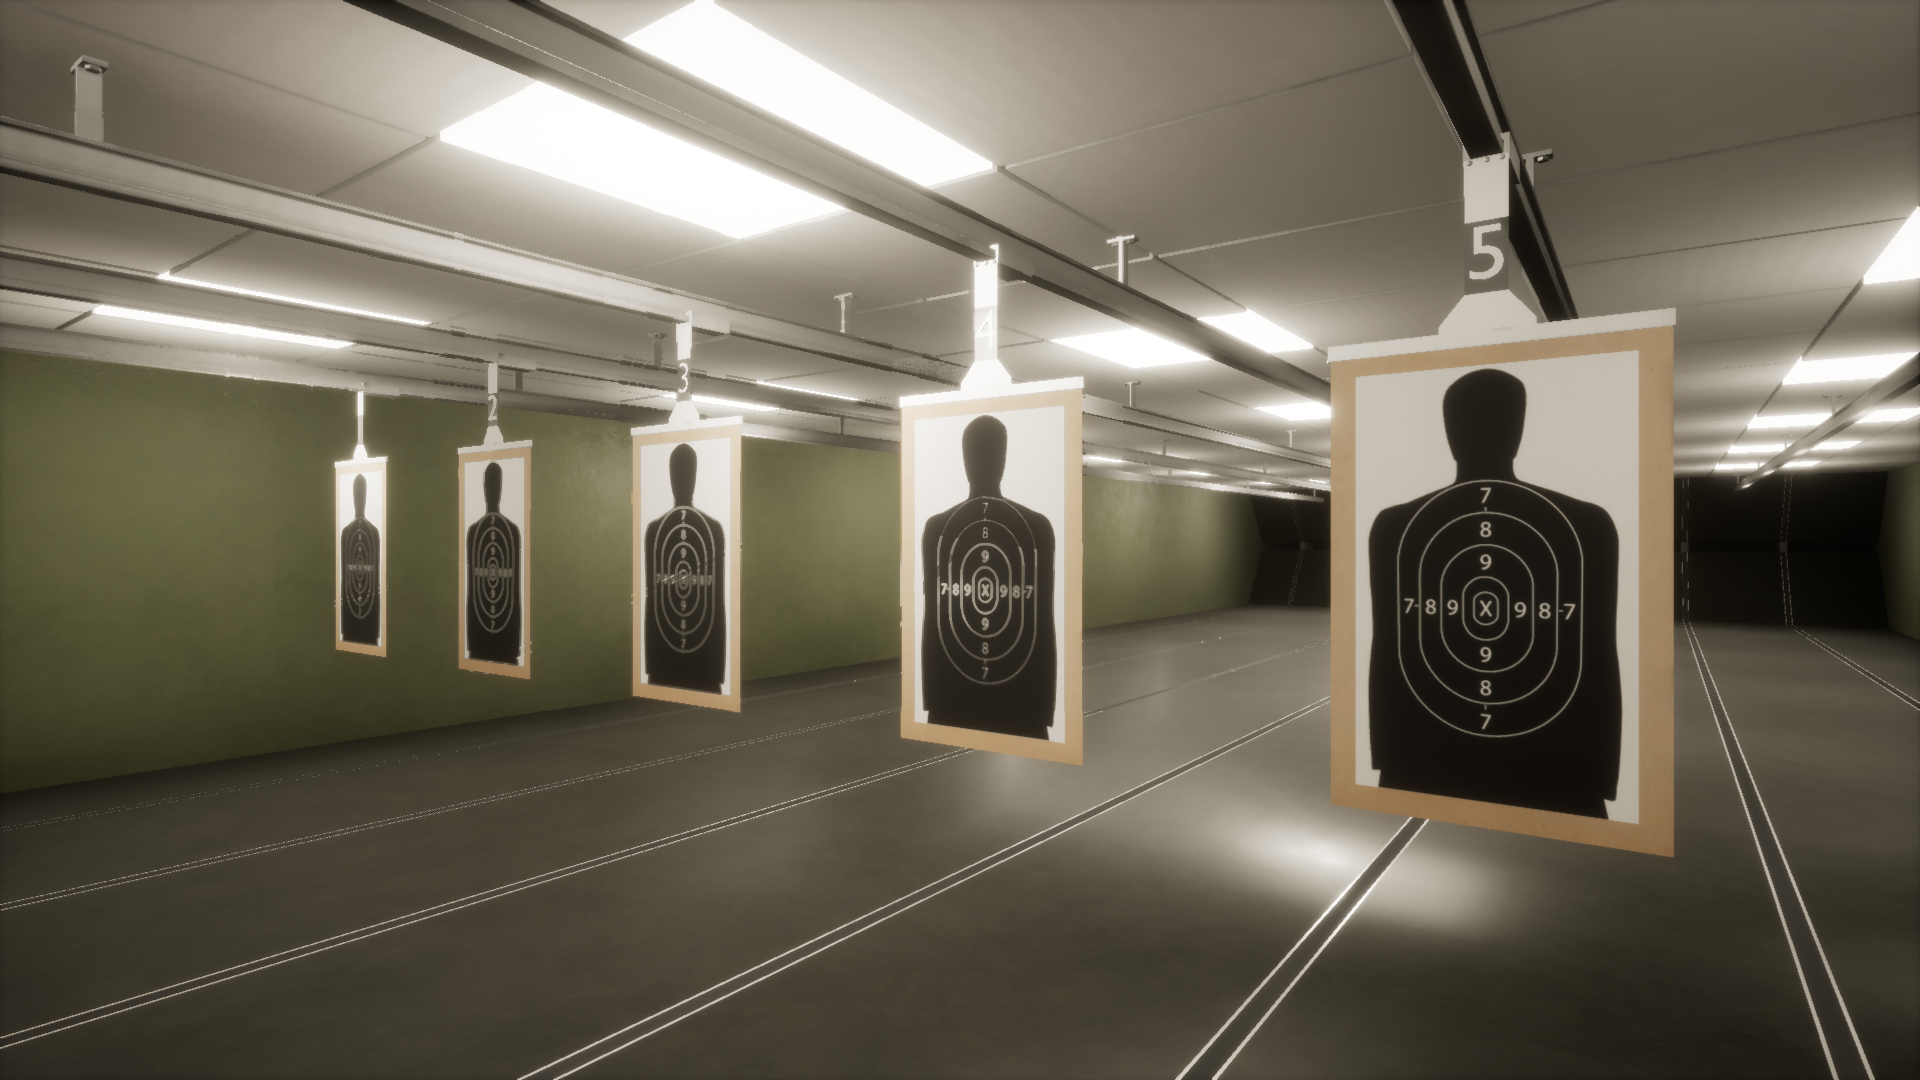 Shooting Range by Next Level 3D in Environments - UE4 Marketplace